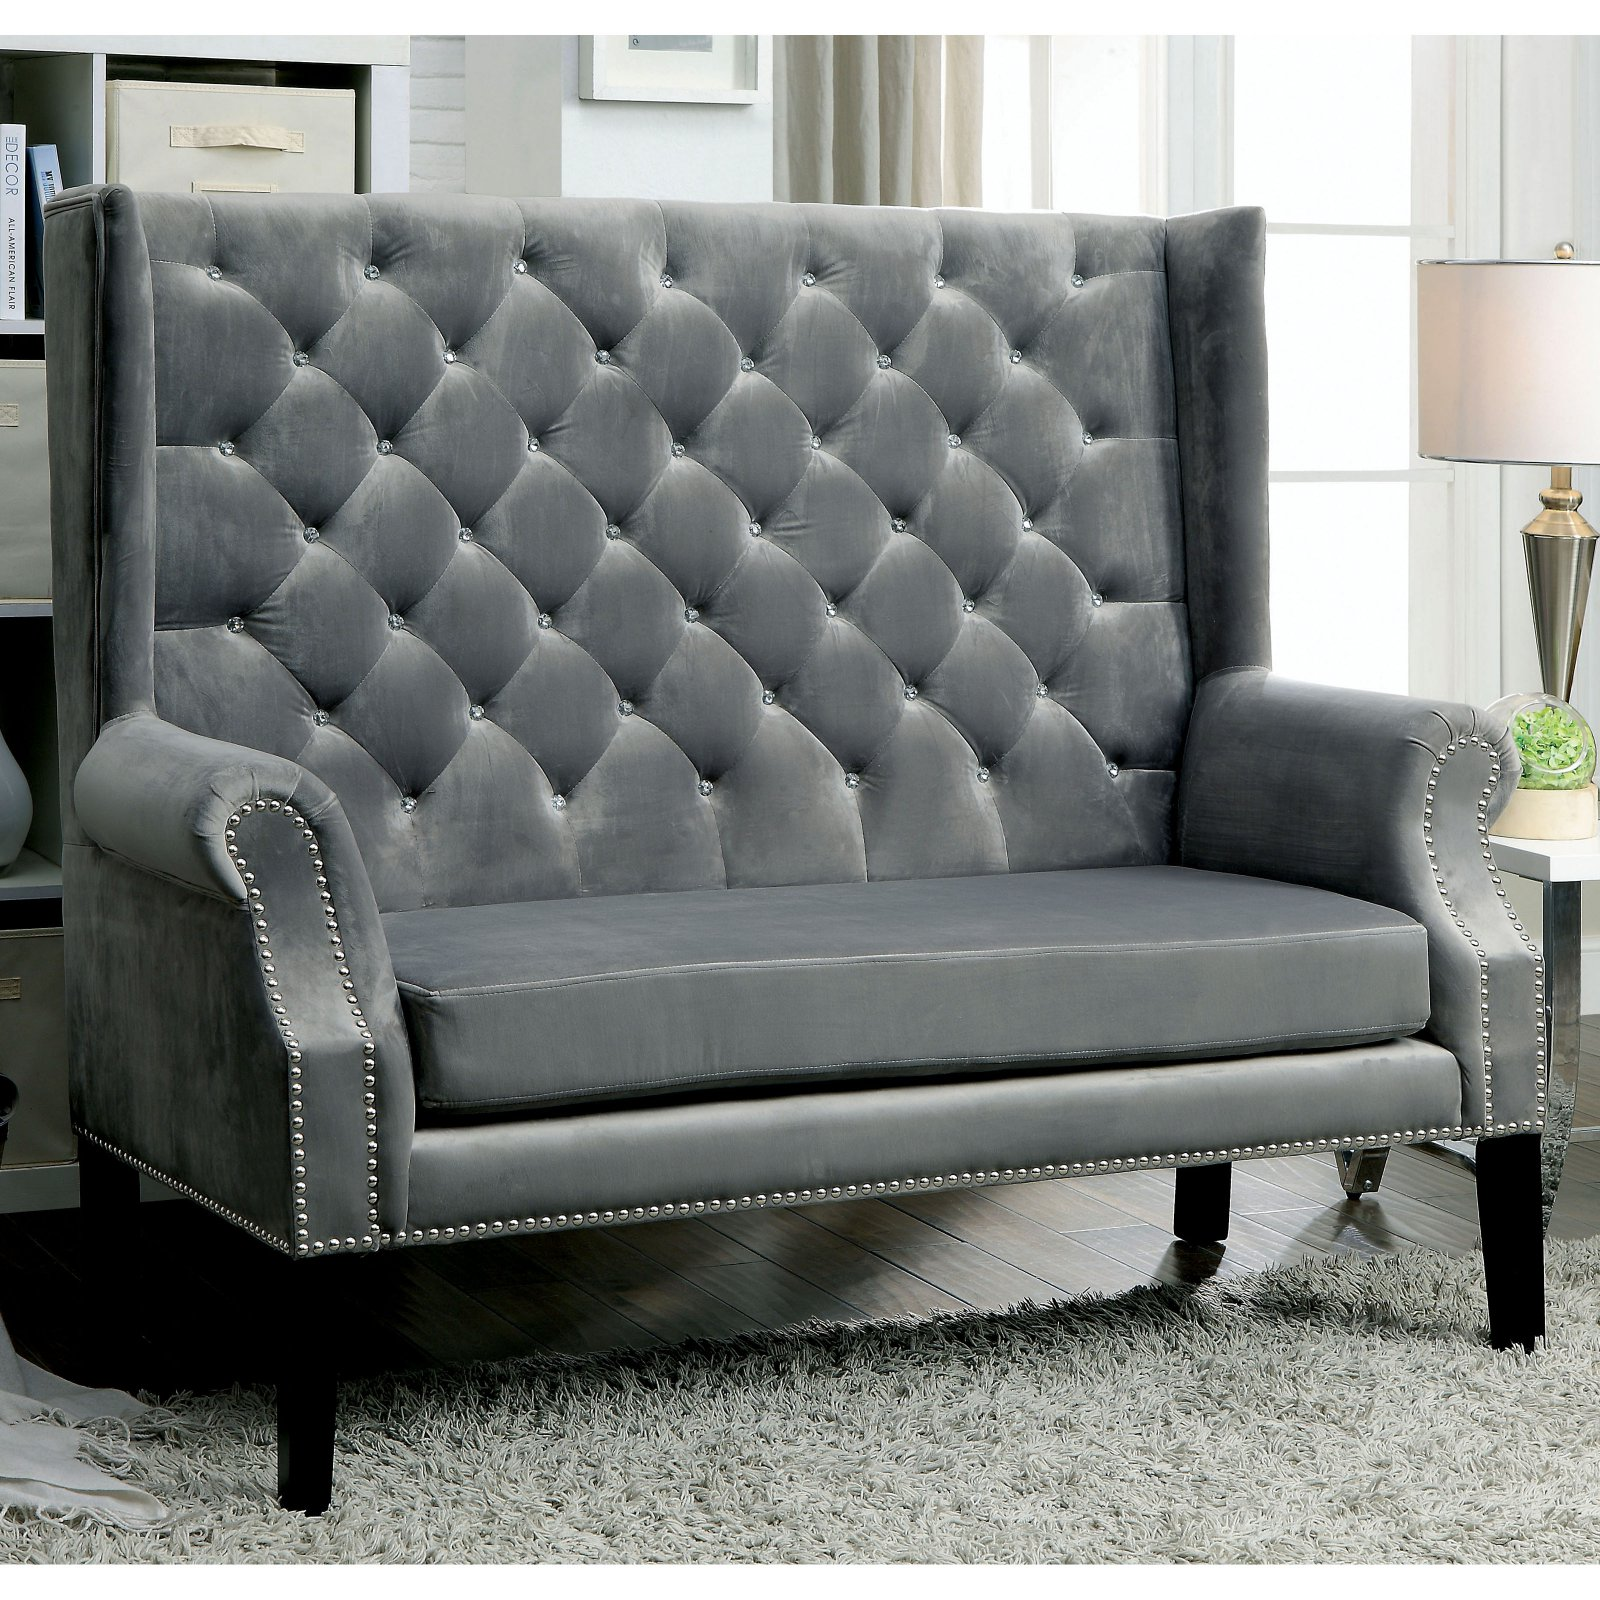 Furniture Of America Alero Contemporary Style Tufted Settee Bench